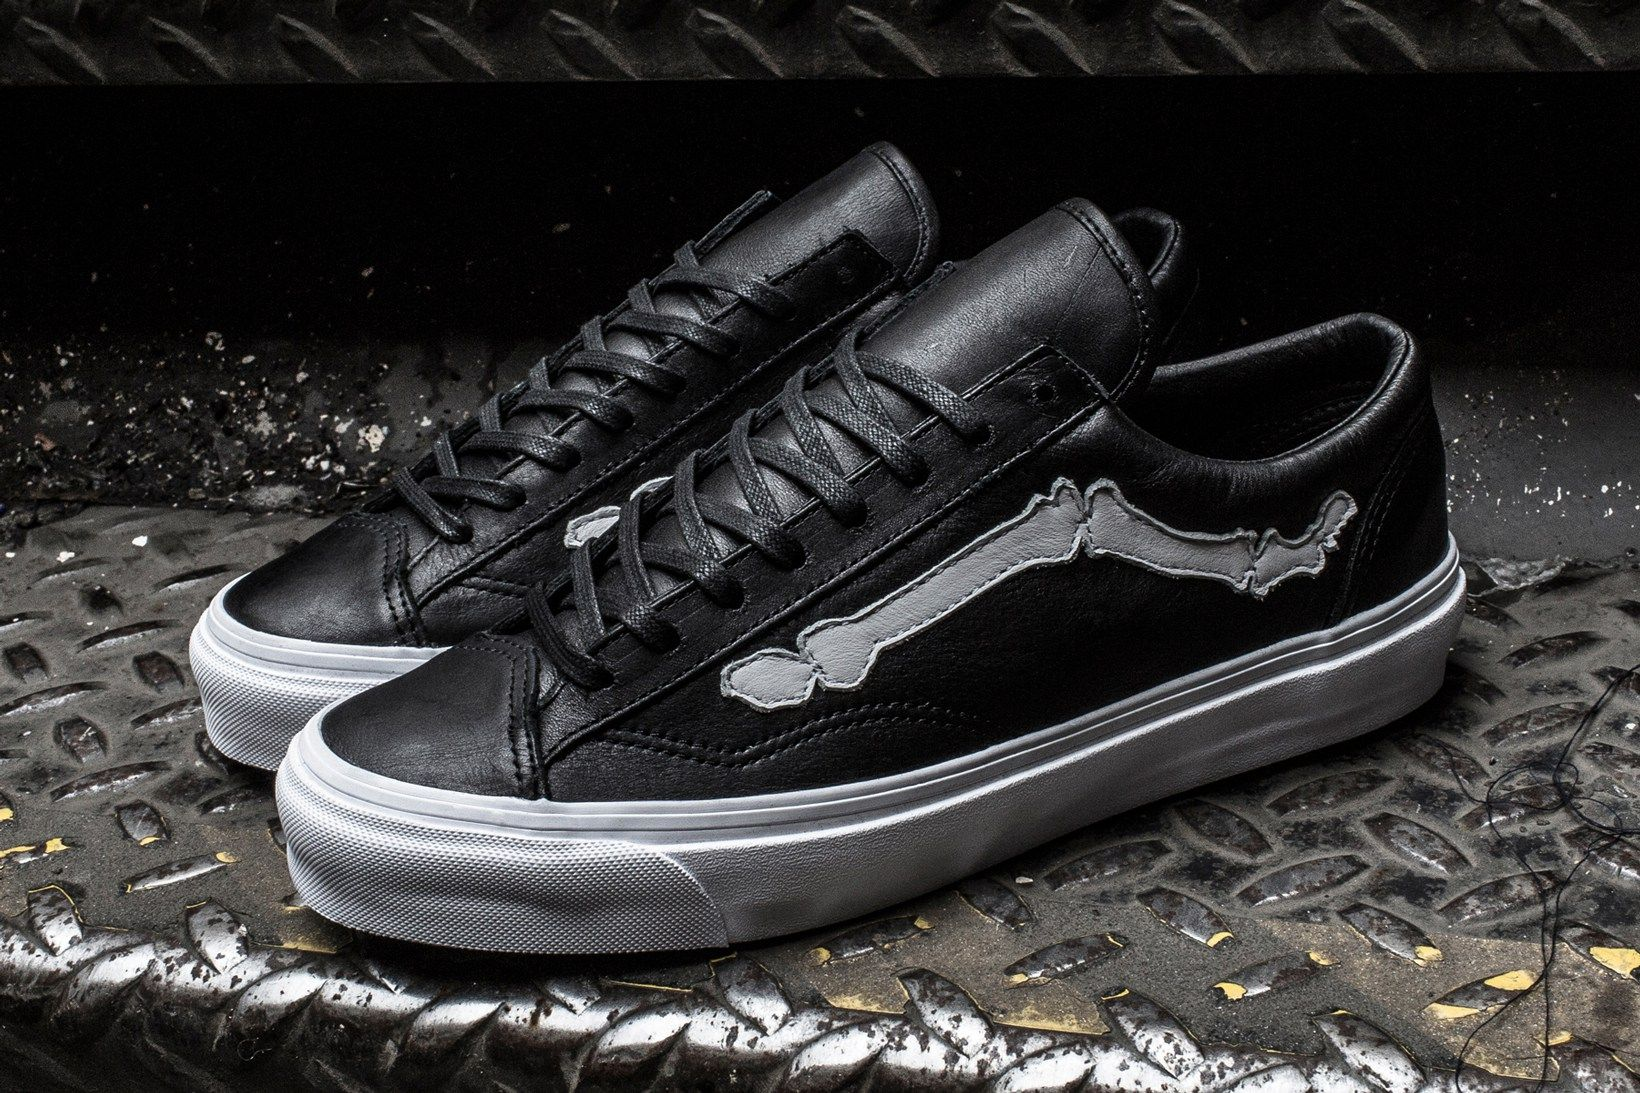 b0dadfa25ff6 For its seventh installment of the Blends x Vault by Vans Bone Jazz-Stripe  series